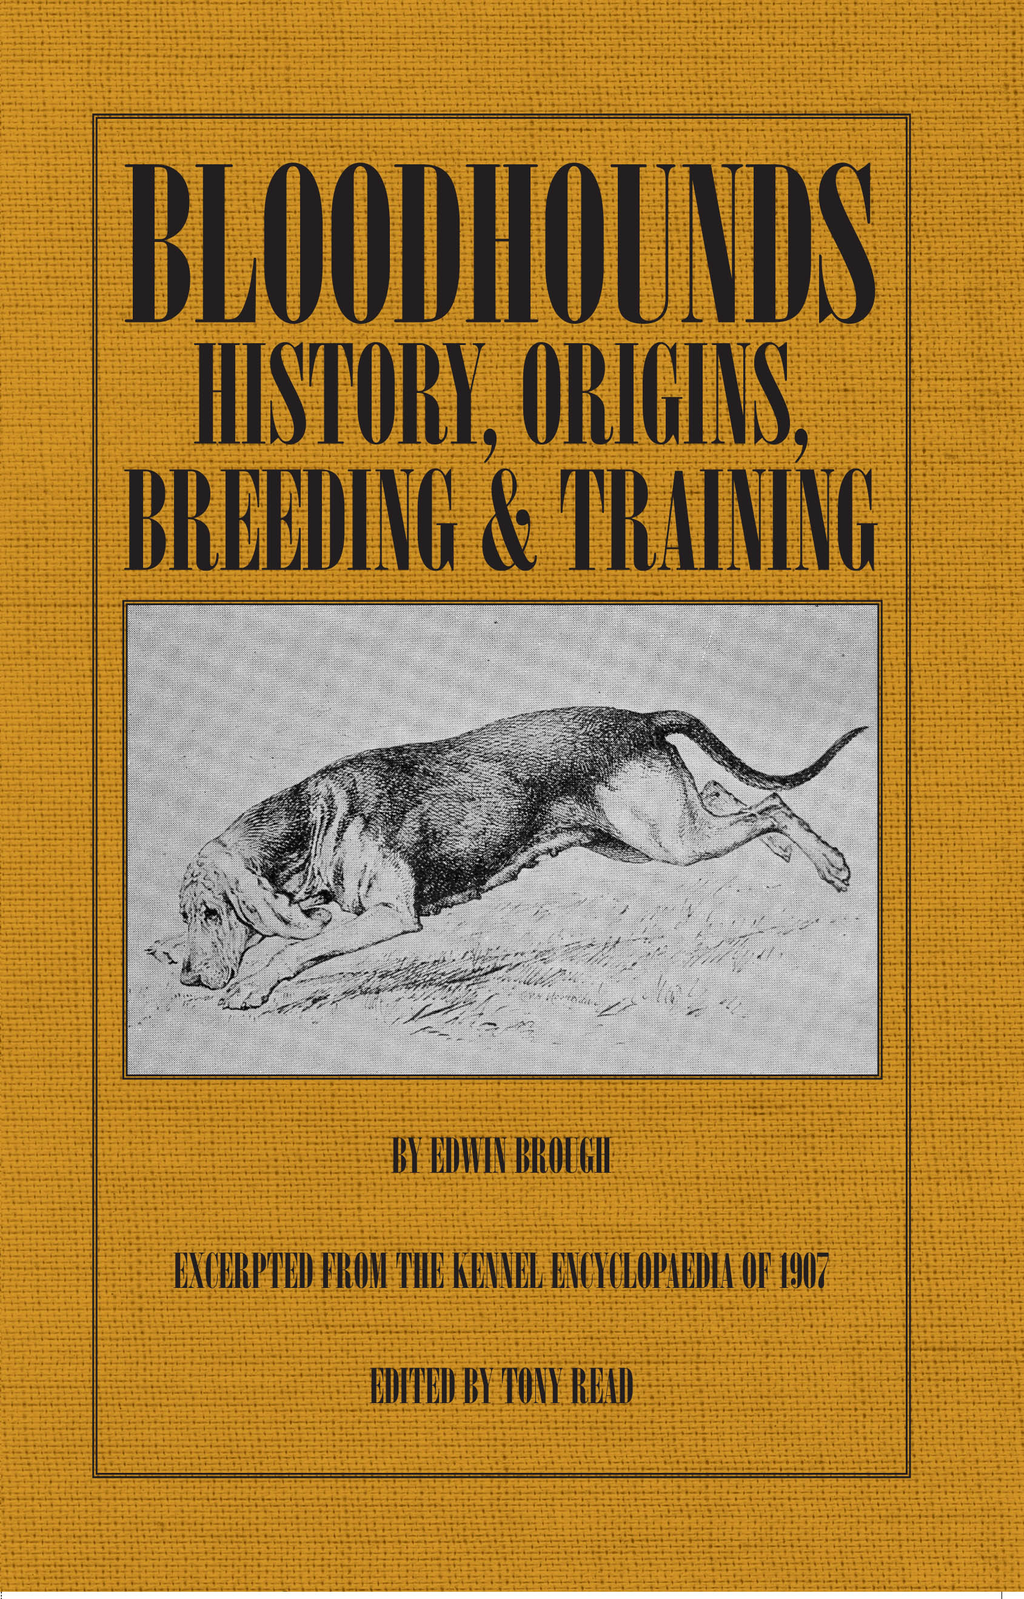 Bloodhounds: History - Origins - Breeding - Training